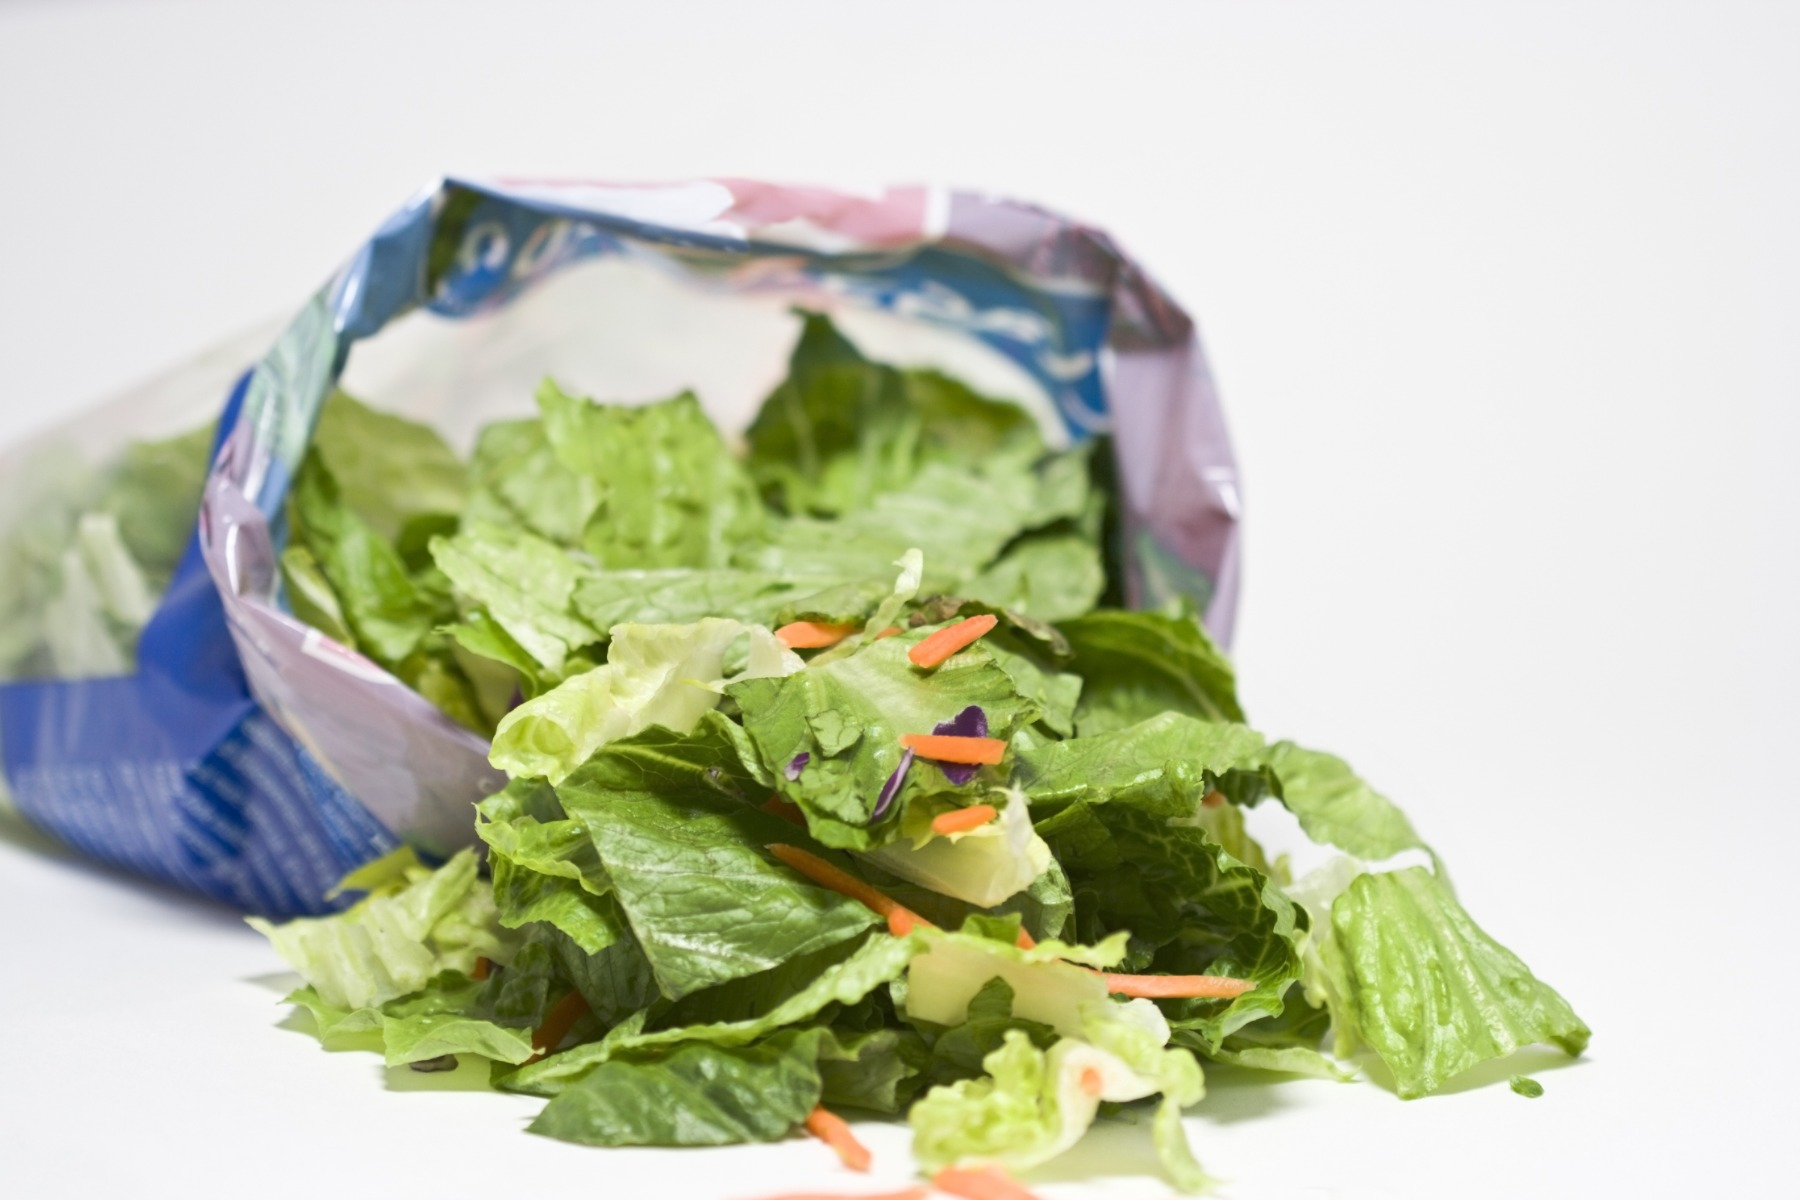 open bag of pre-made salad spilling onto white background